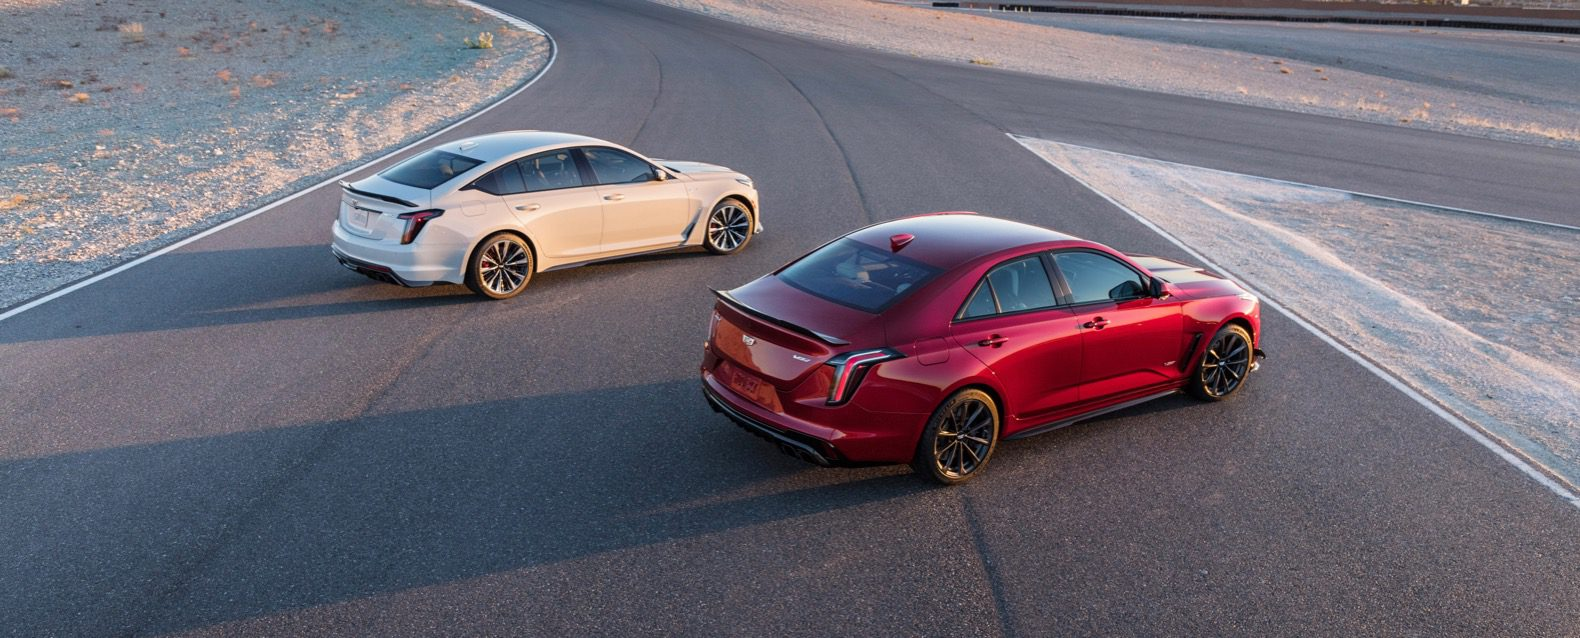 2022 Cadillac CT4-V Blackwing and CT5-V Blackwing